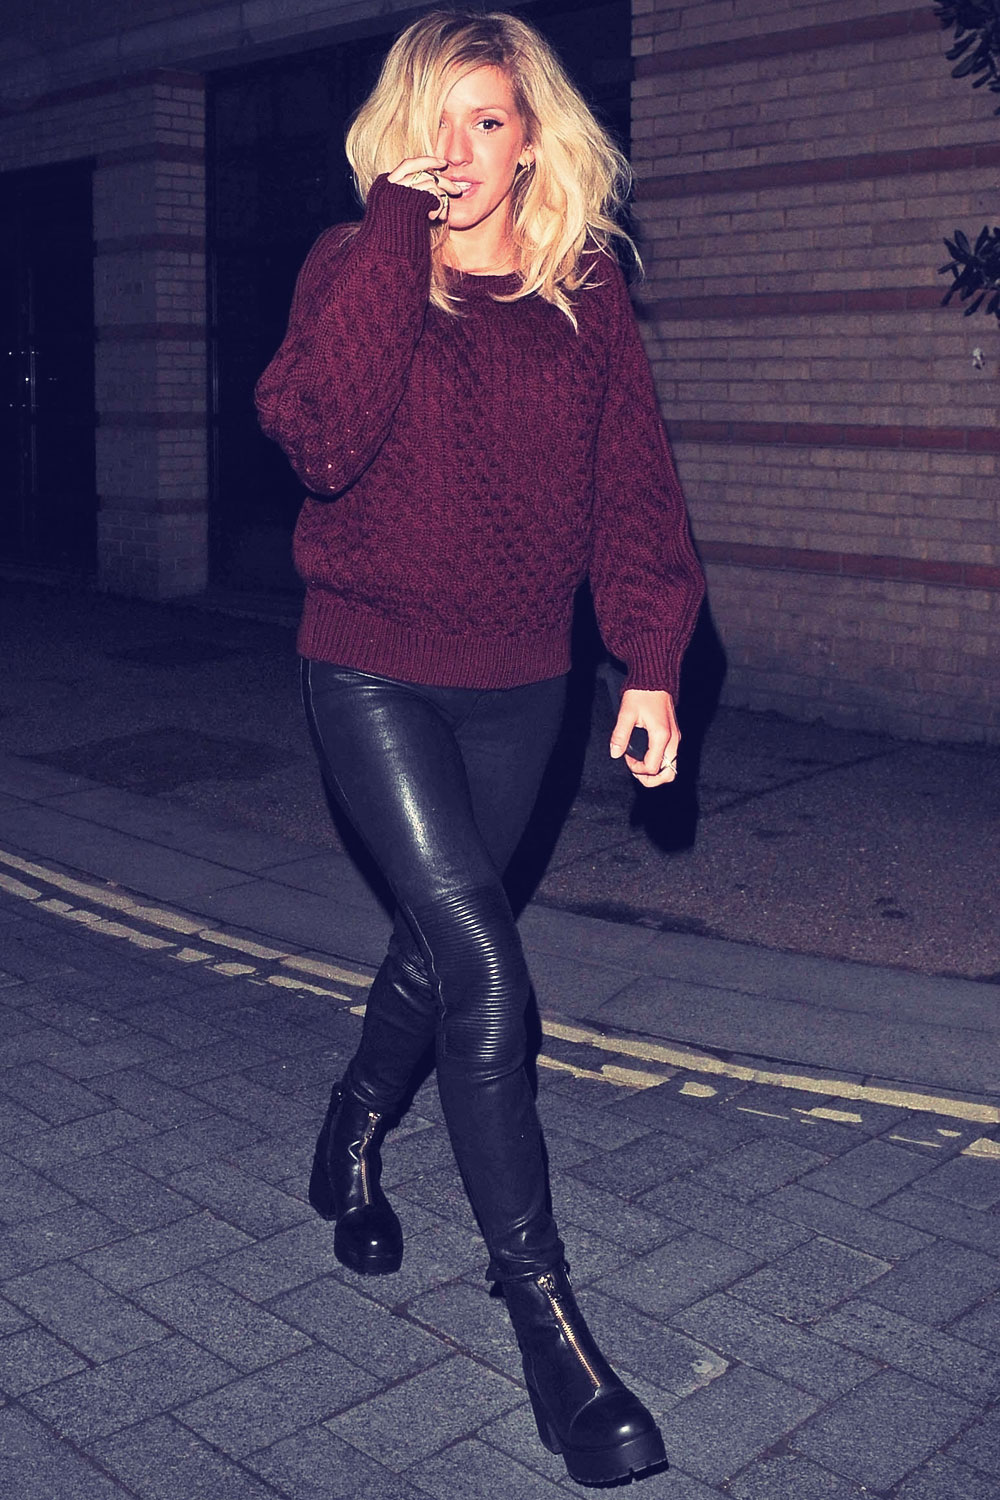 Ellie Goulding leaving the OXO Tower Brasserie